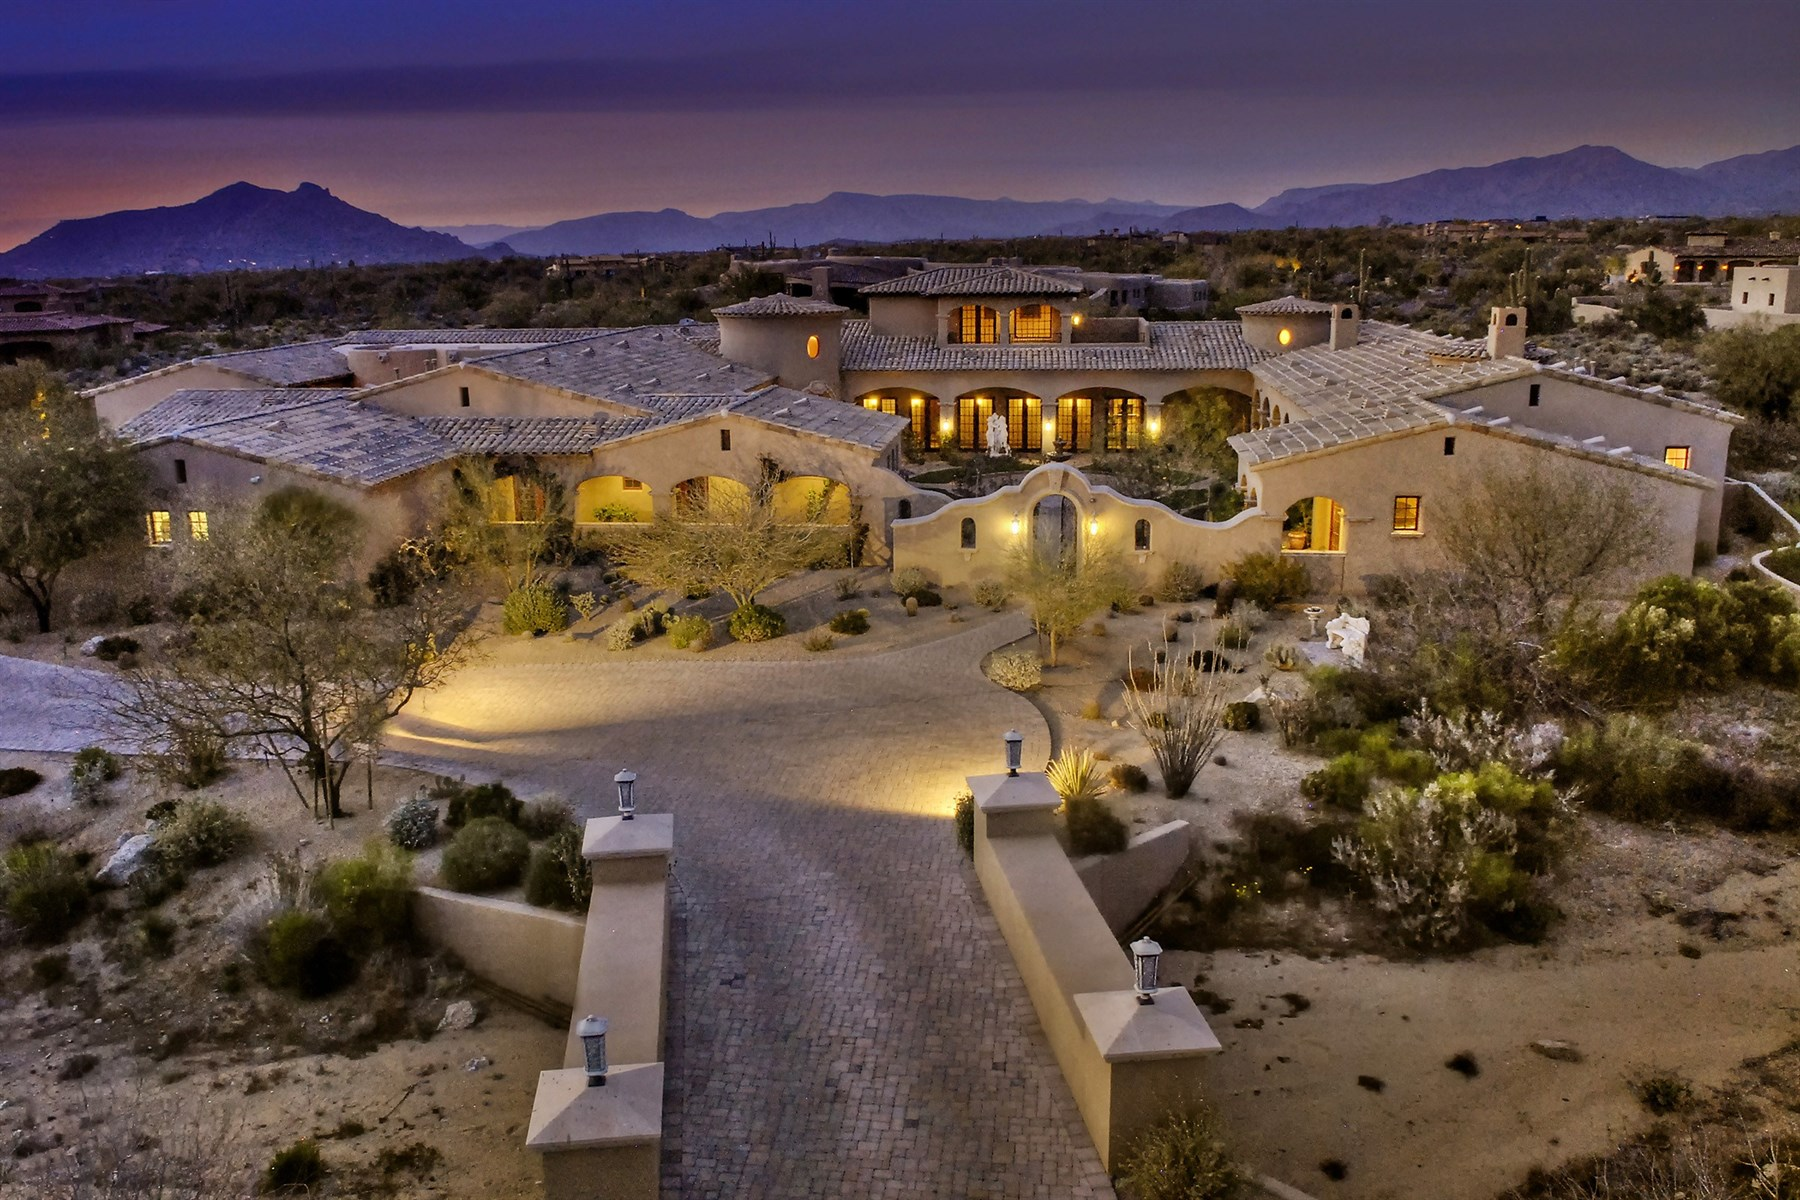 Single Family Home for Sale at 2.75 Acres Of Privacy In The Guard-Gated Golf Community Of Whisper Rock 8652 E Old Field Road Scottsdale, Arizona 85266 United States